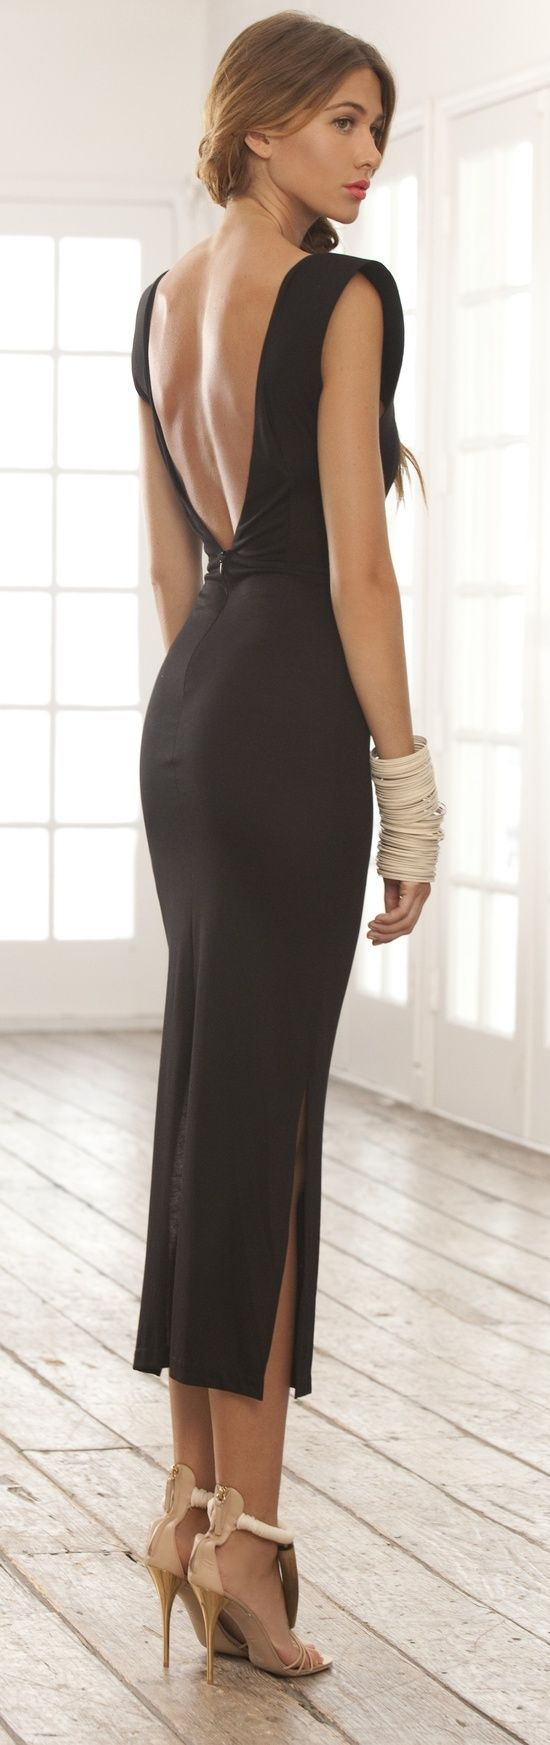 Backless Dress 21